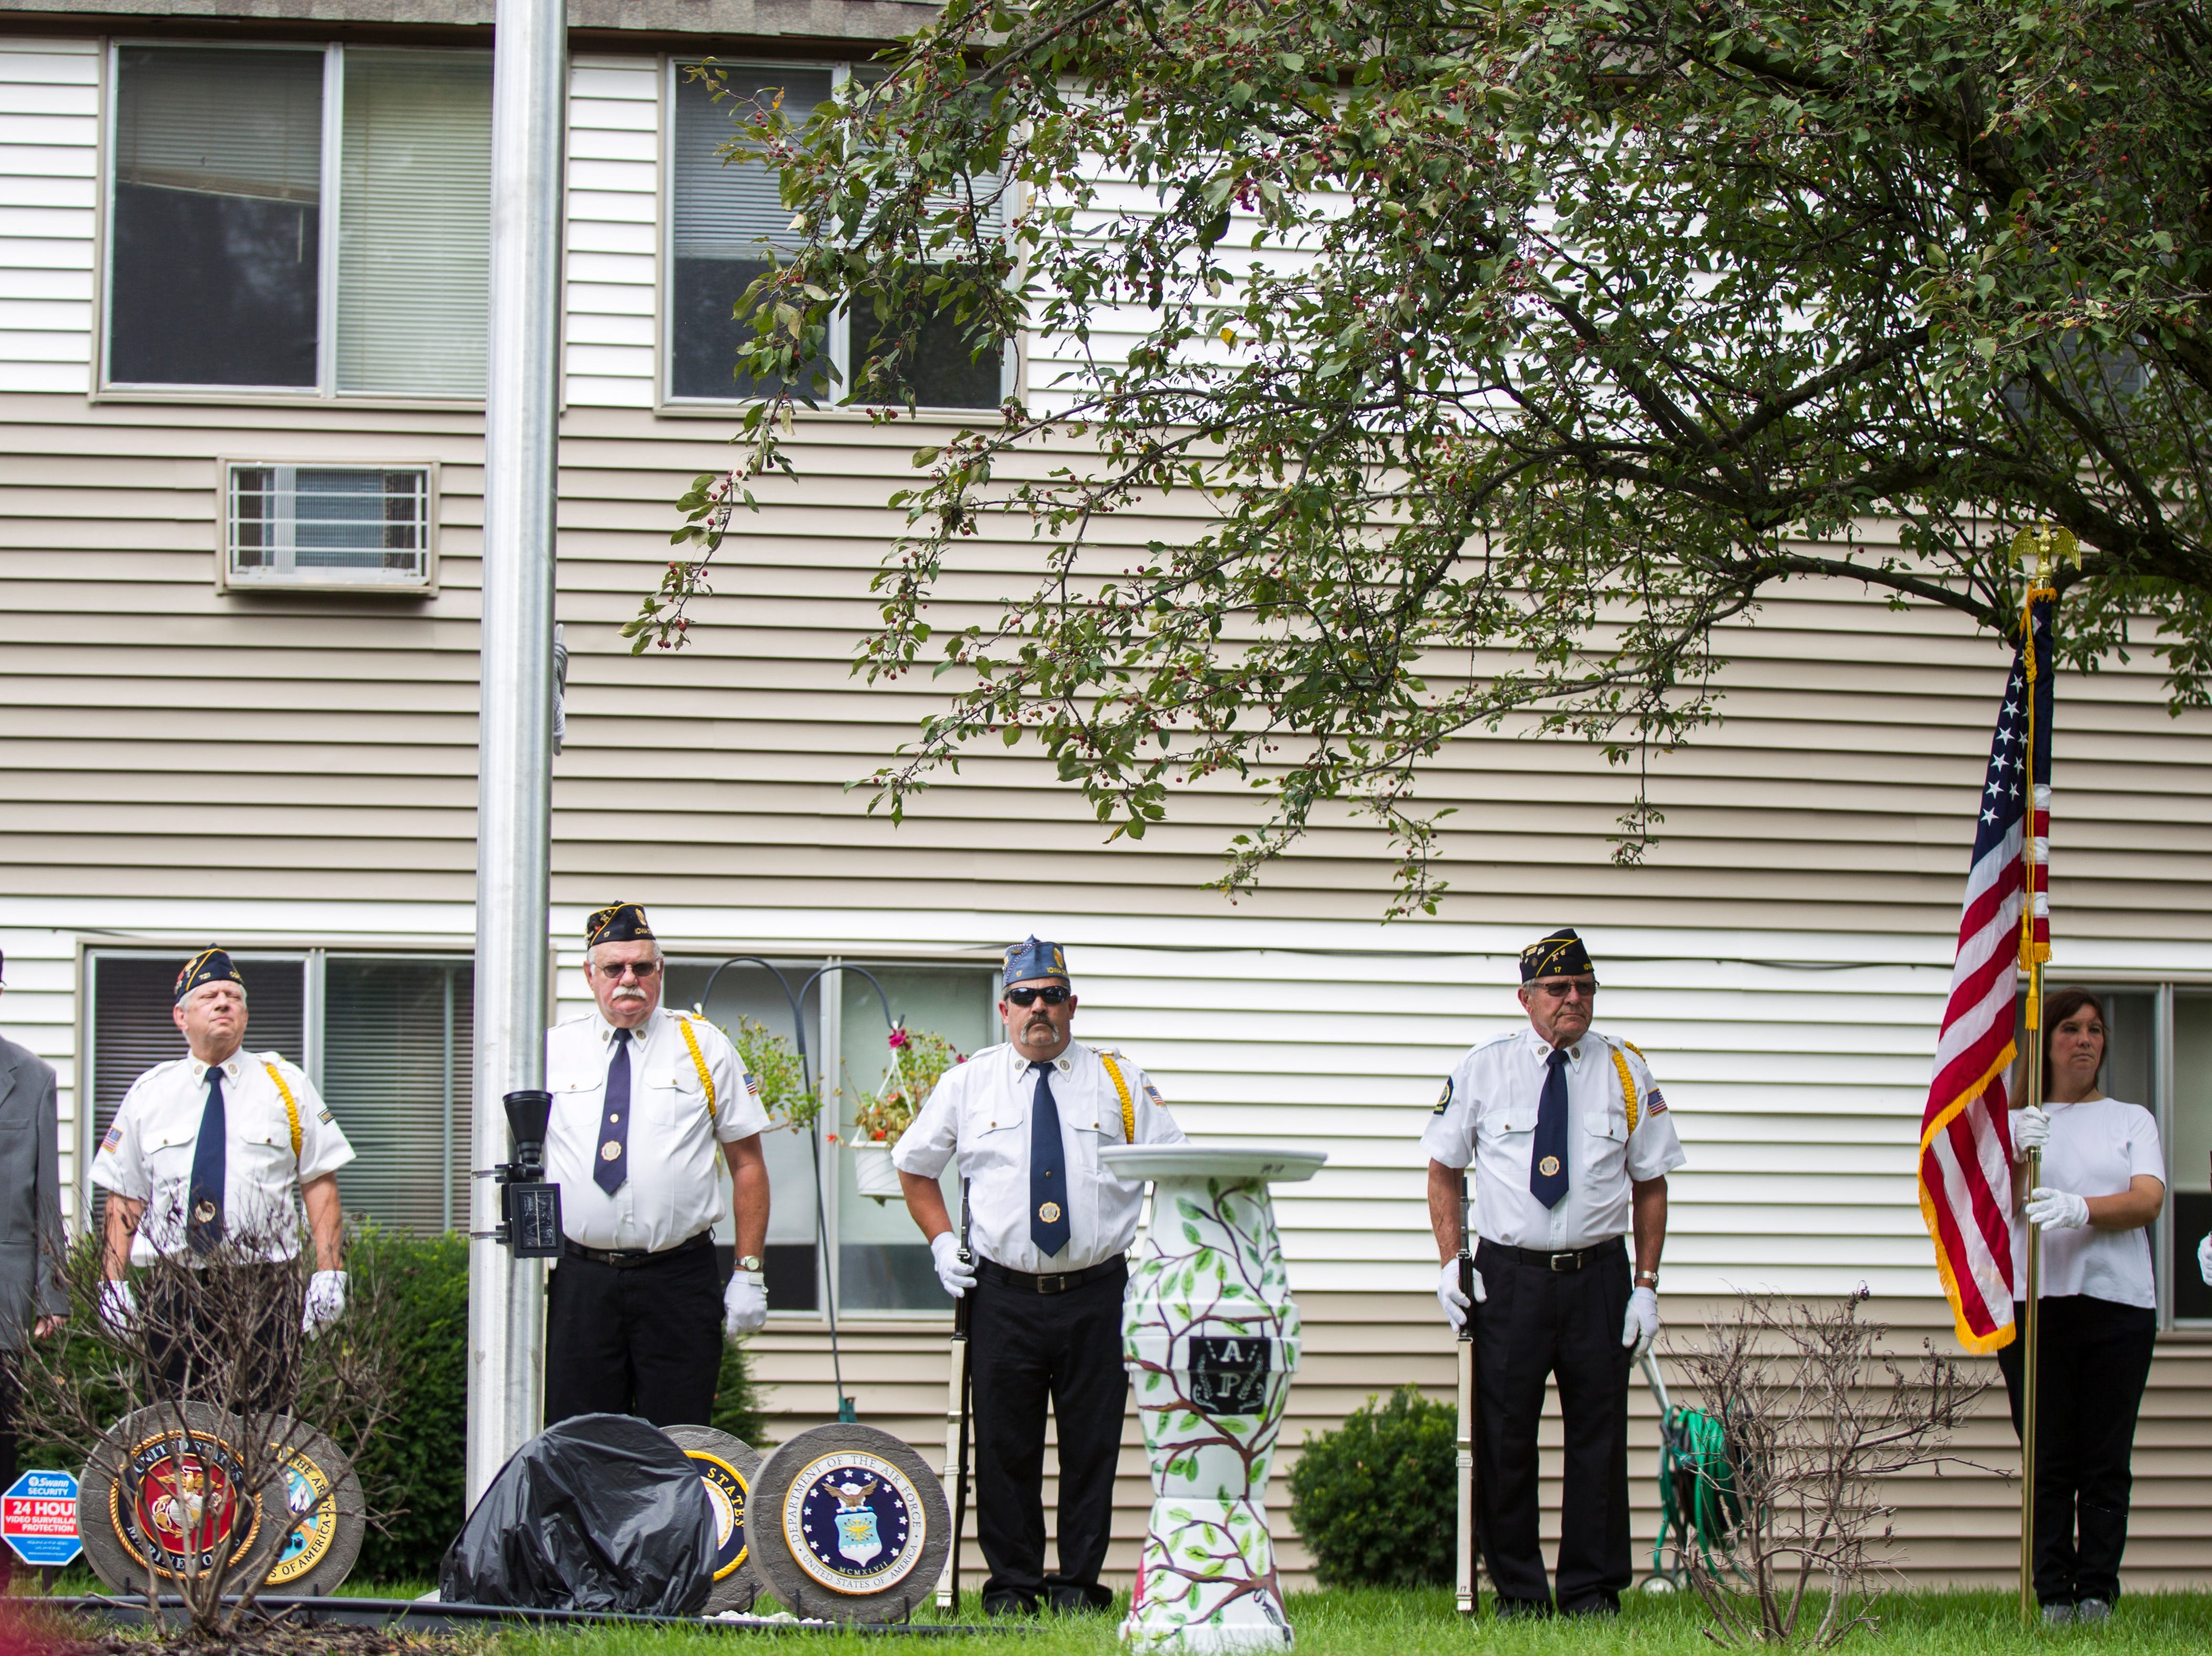 World War II U.S. Navy veteran Russell H. Ware (left) stands with members of the Iowa City American Legion Post 17 and Coralville Post 721 during a dedication ceremony on Monday, Sept. 3, 2018, at the Autumn Park Apartments in Iowa City.